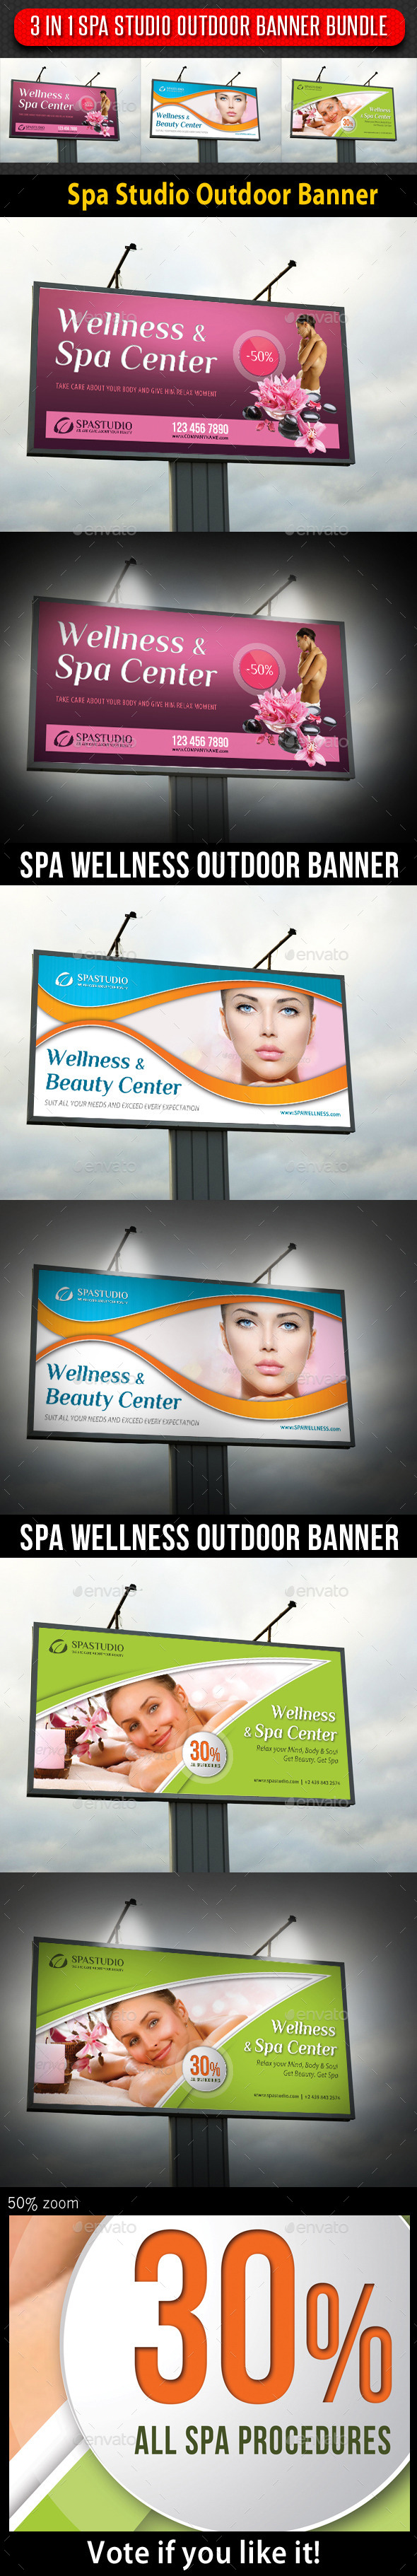 GraphicRiver 3 in 1 Spa Studio Outdoor Banner Bundle 9378345